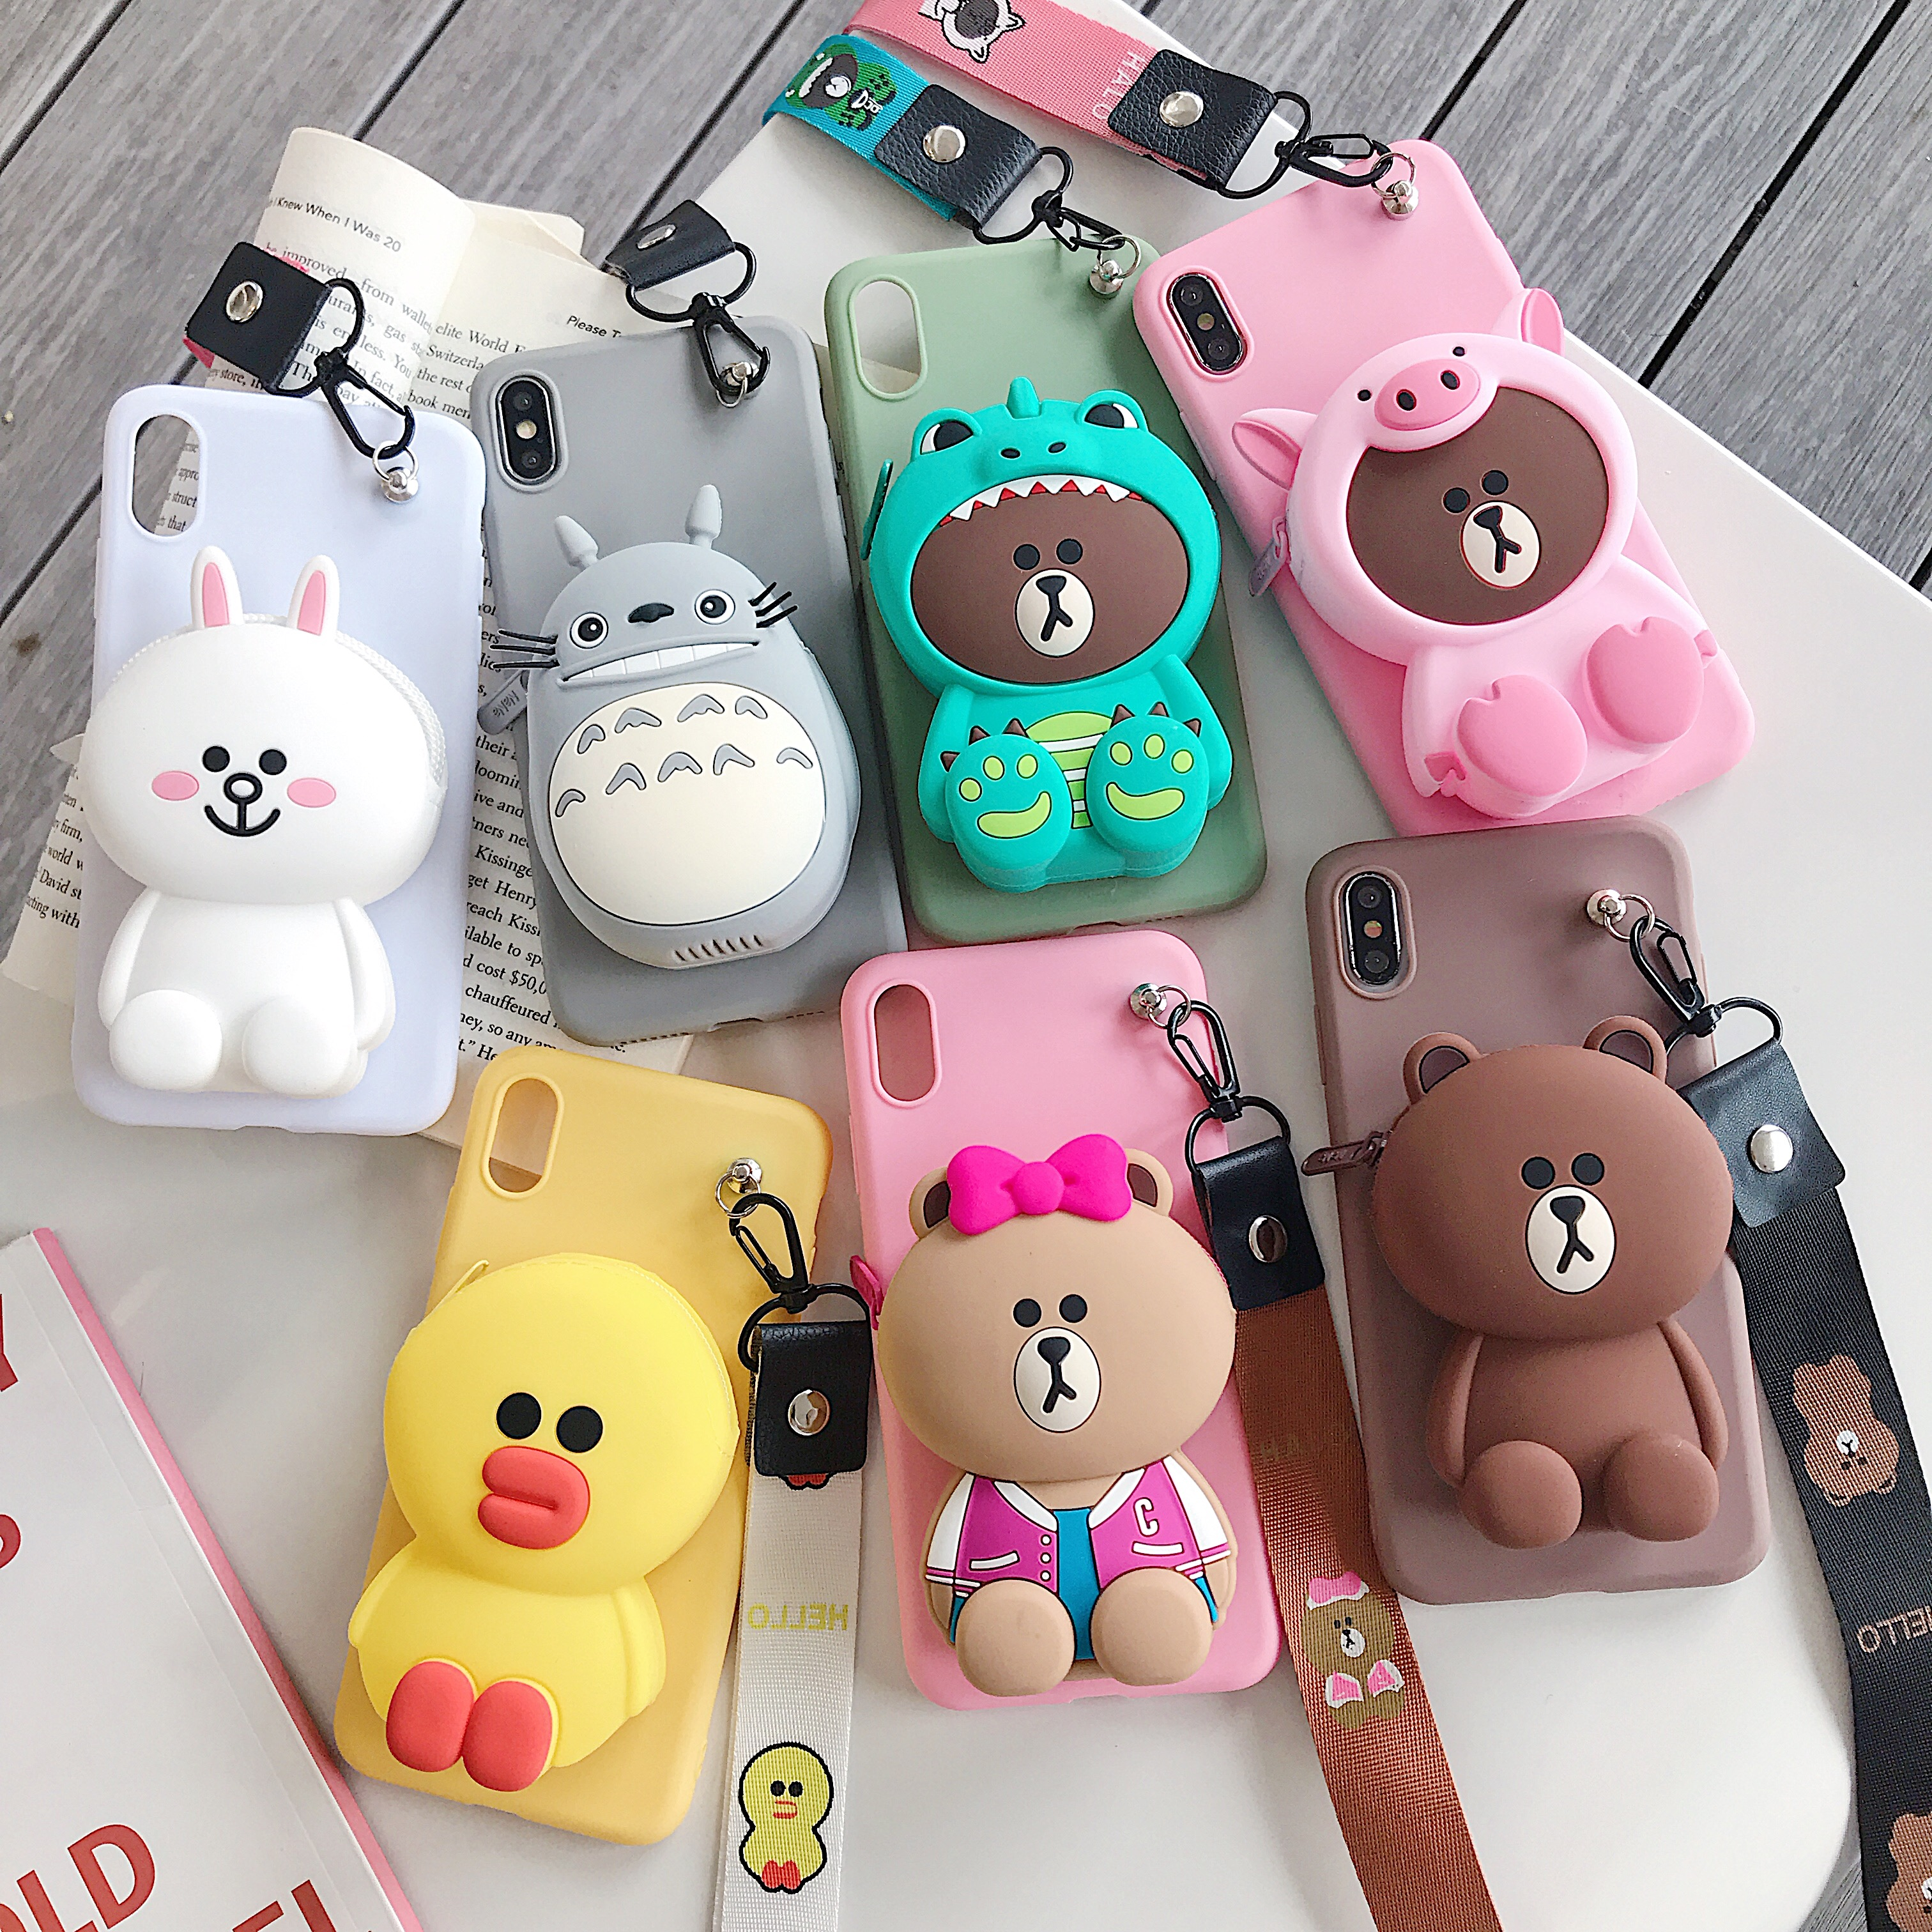 <font><b>3D</b></font> Cartoon Brown bear rabbit Wallet Phone <font><b>Case</b></font> For <font><b>oneplus</b></font> 7 pro <font><b>oneplus</b></font> 6t 5t 5 <font><b>6</b></font> Cute Soft Anti-fall Lanyard Strap Cover <font><b>case</b></font> image